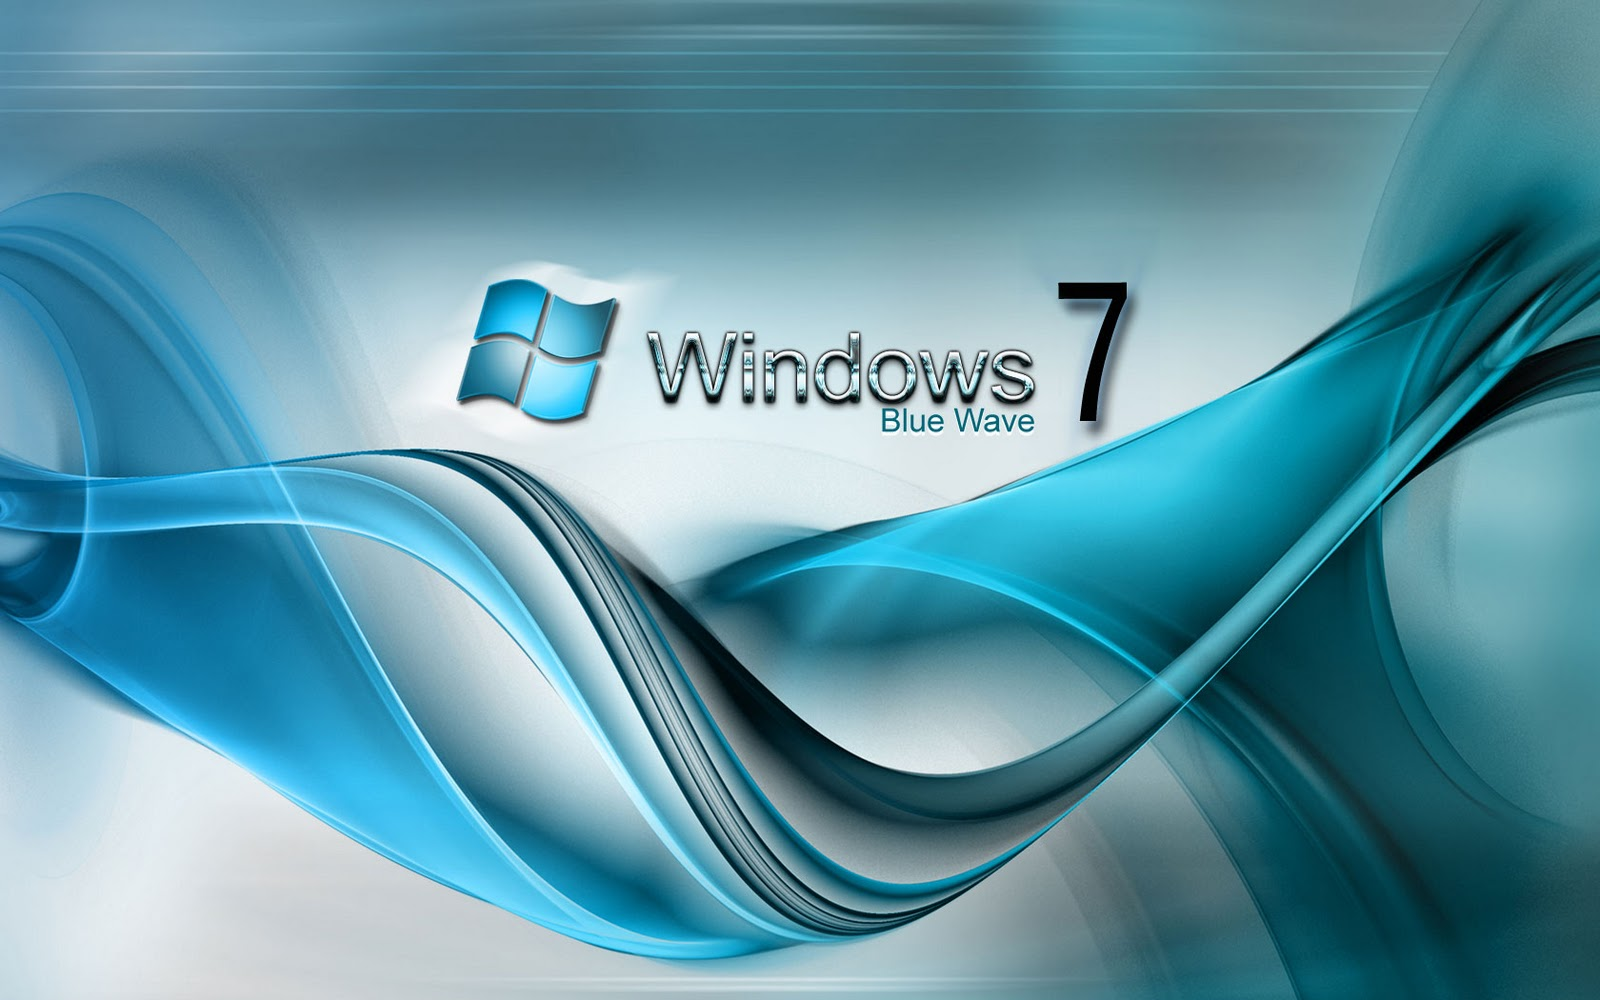 Free download windows 7 blue wave wallpapers wallpapers area for Window 3d wallpaper